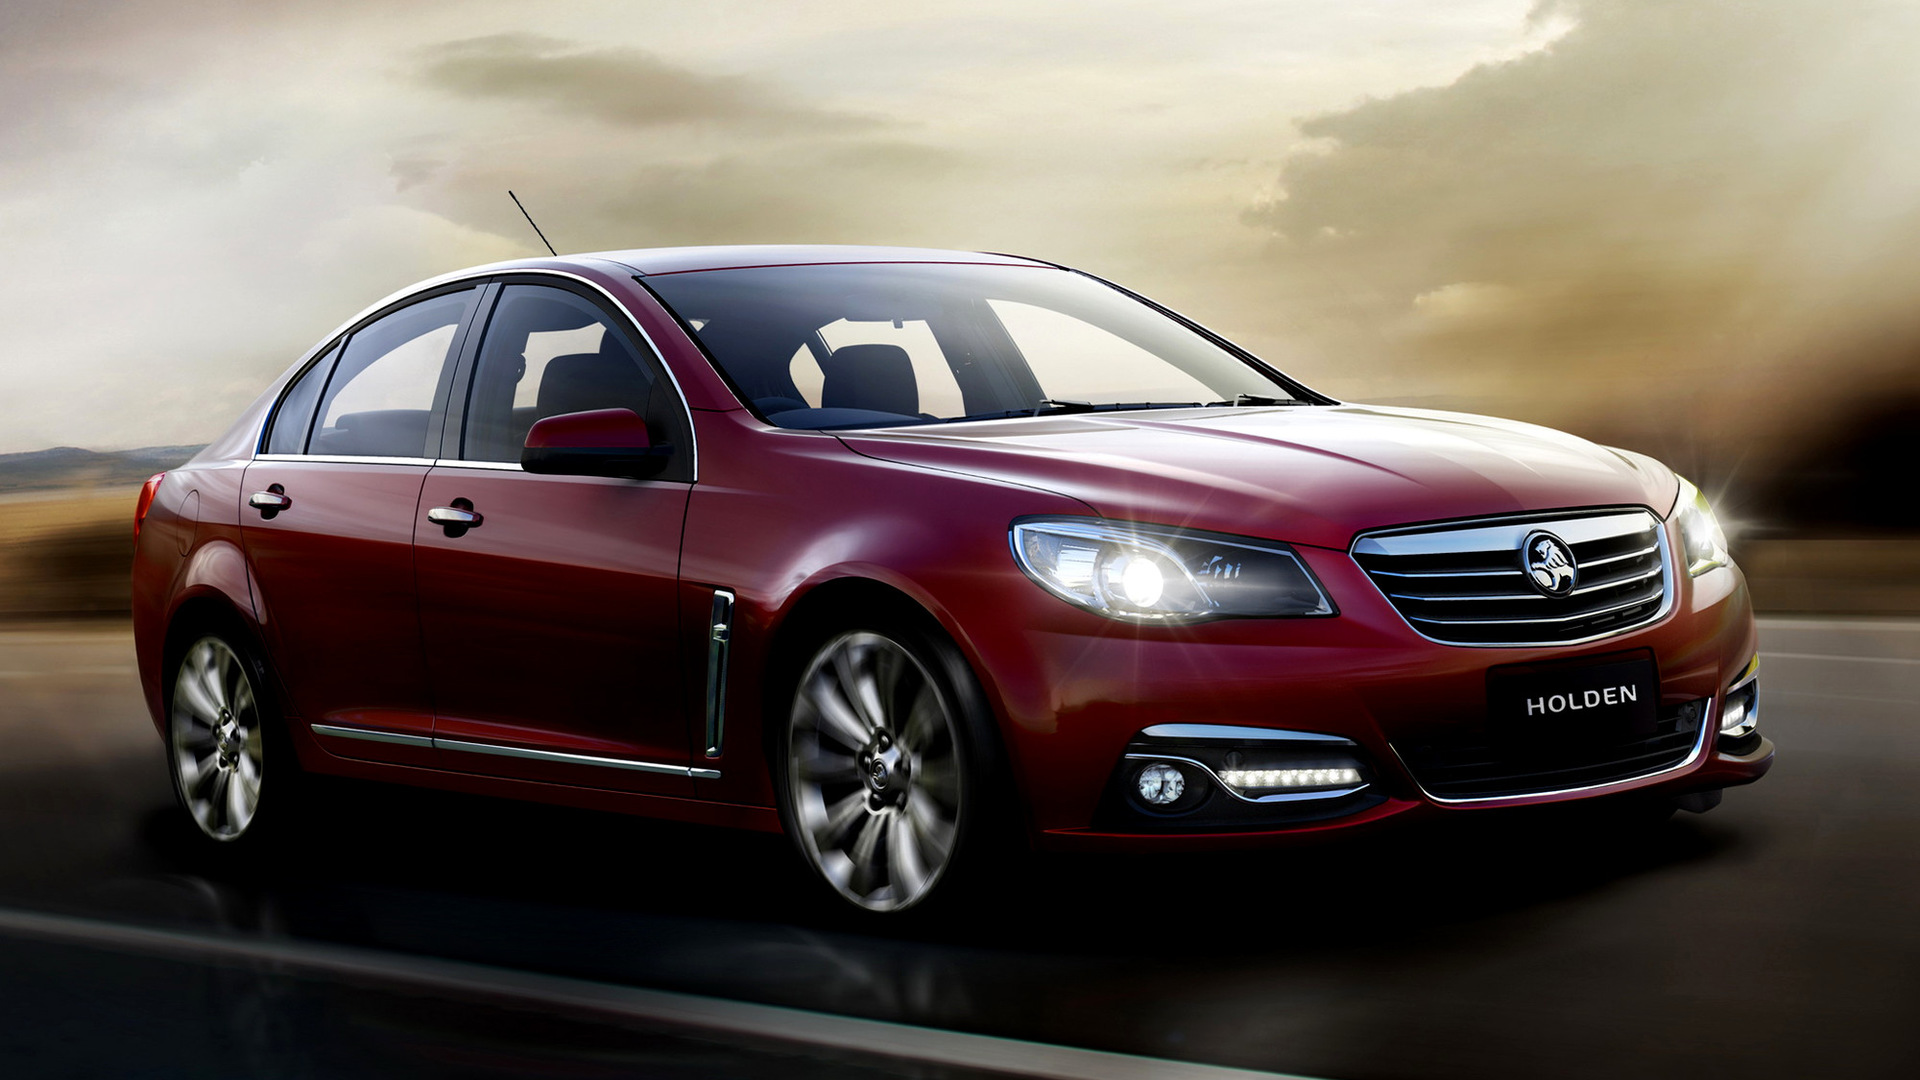 holden calais v 2013 wallpapers and hd images car pixel. Black Bedroom Furniture Sets. Home Design Ideas